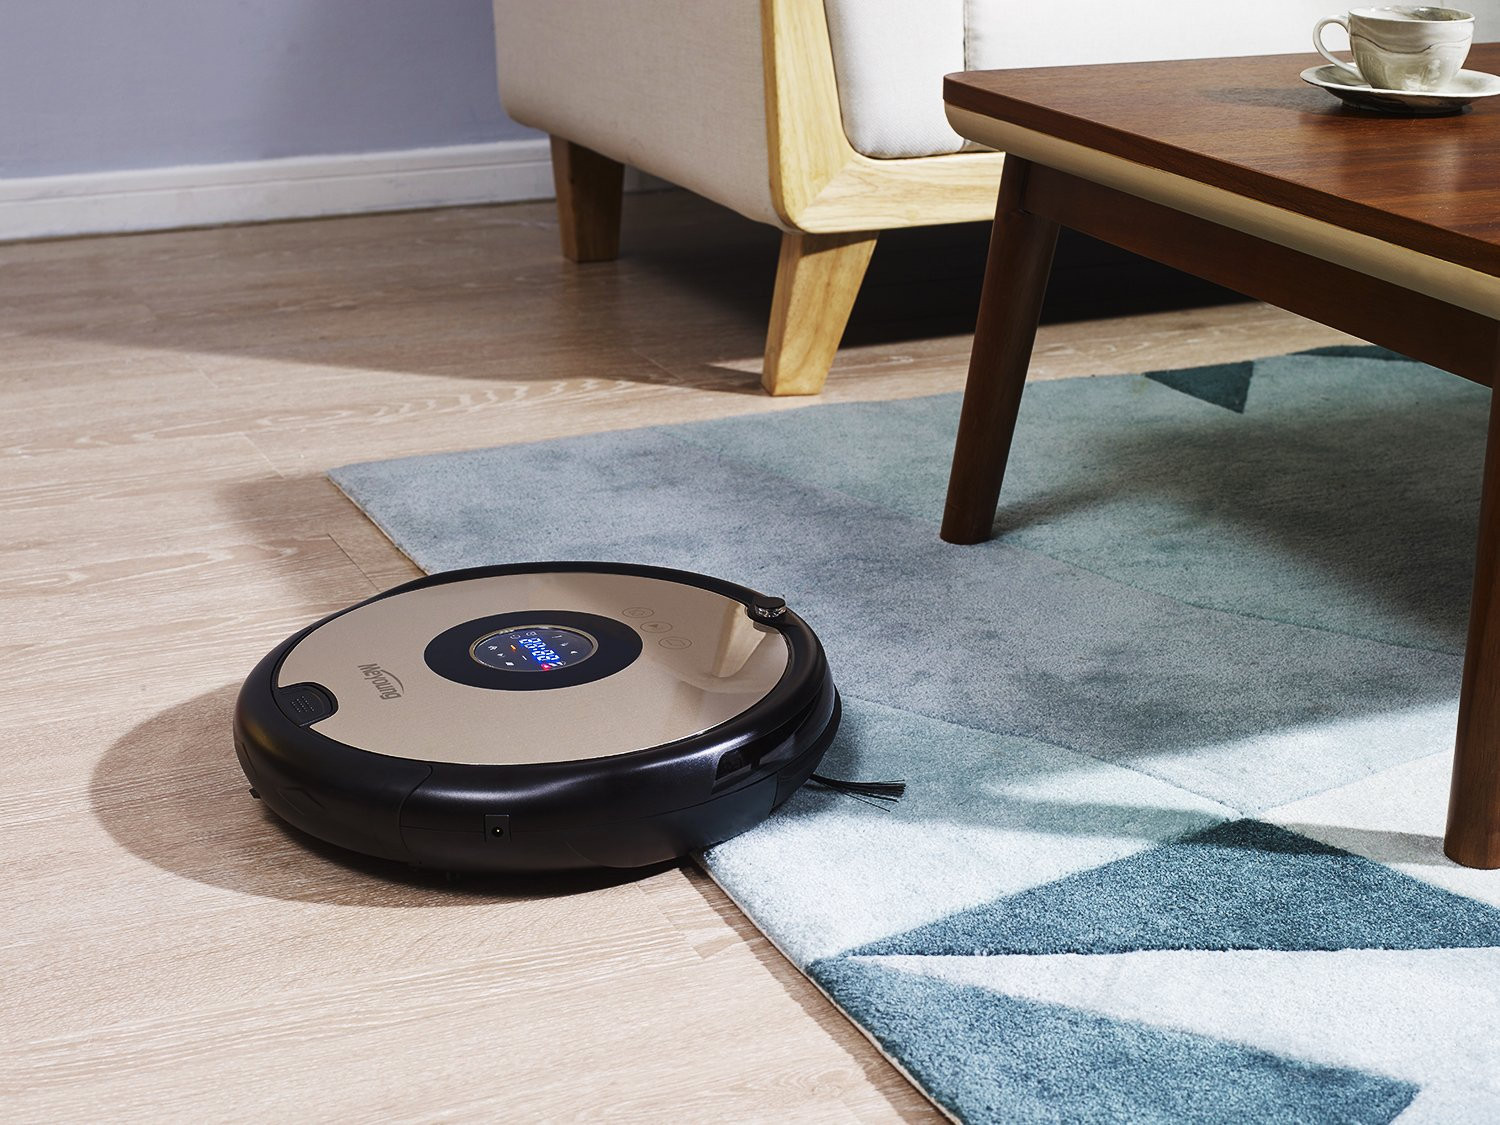 Top 15 Best Powerful Vacuum Cleaning Robots Reviews 2019